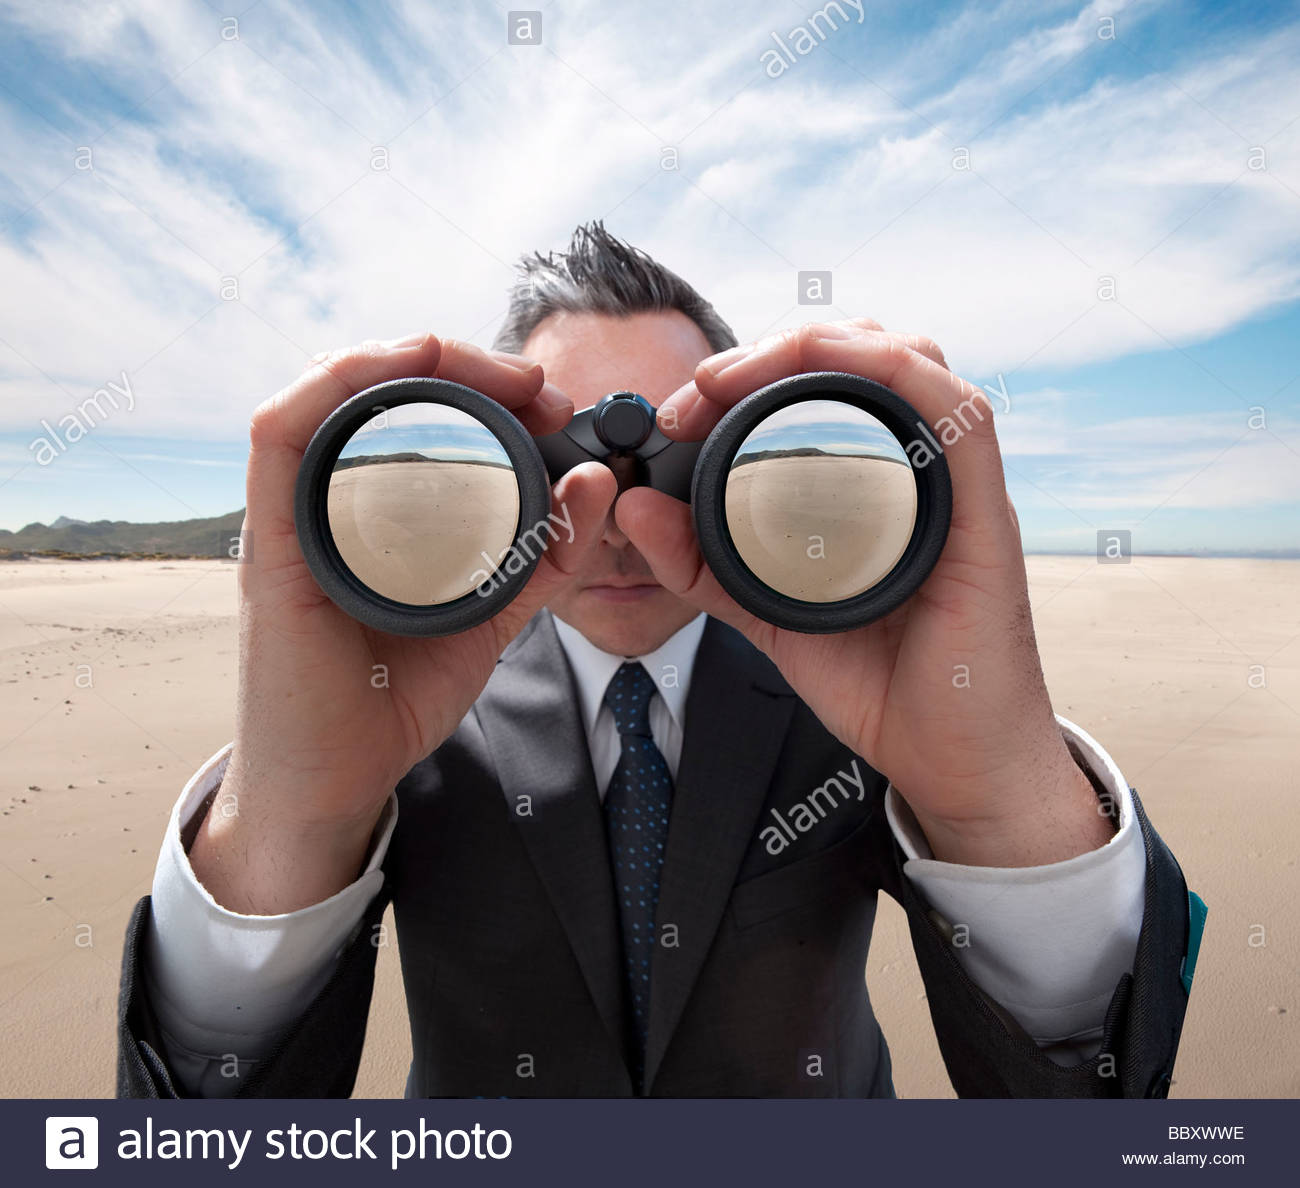 A man in a business suit standing in the desert peering through binoculars. - Stock Image